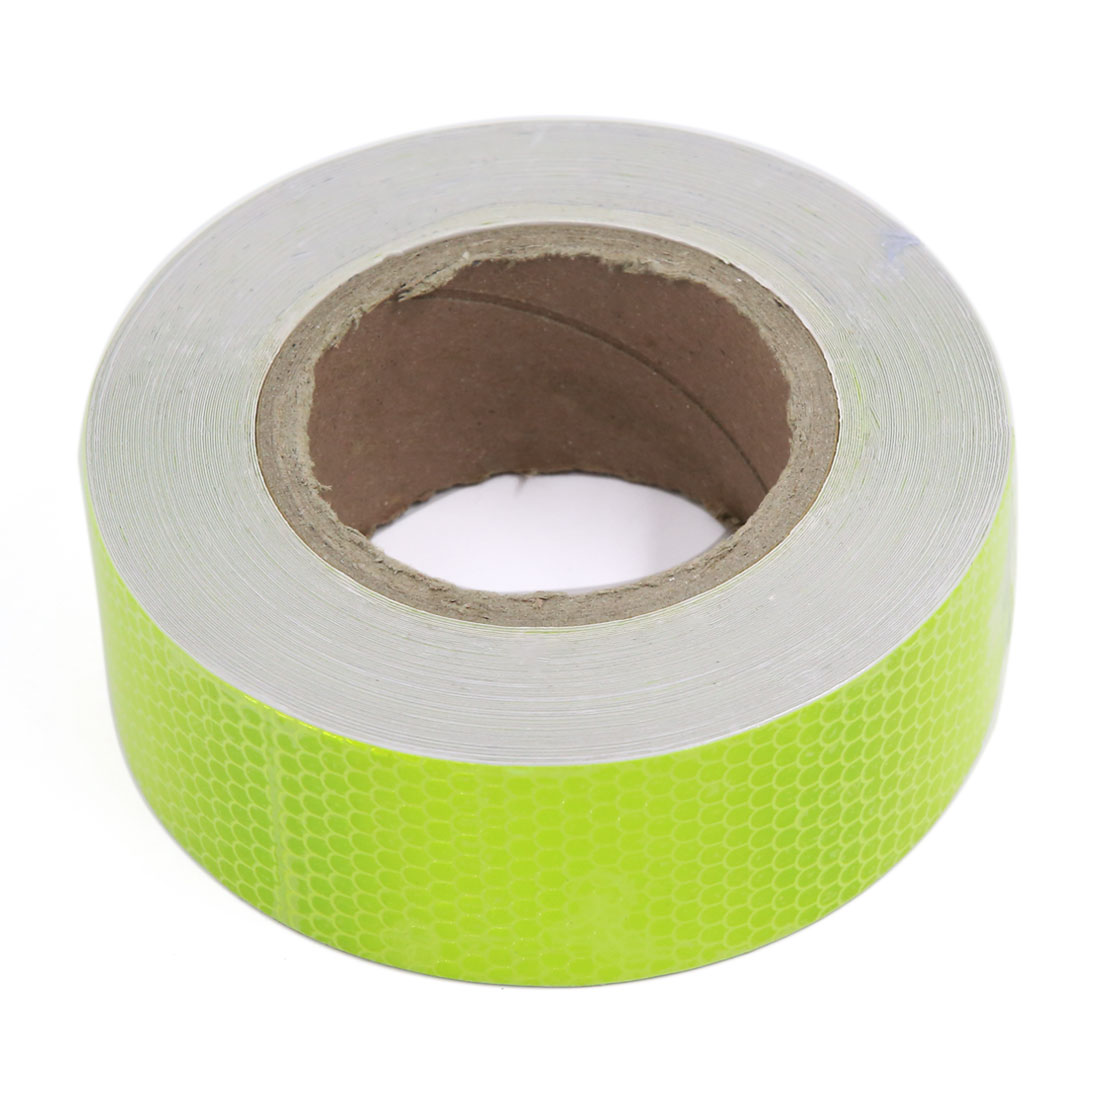 Fluorescence Green Covers Motorcycle Reflective Tape Stickers Car Styling 50mm x 25M